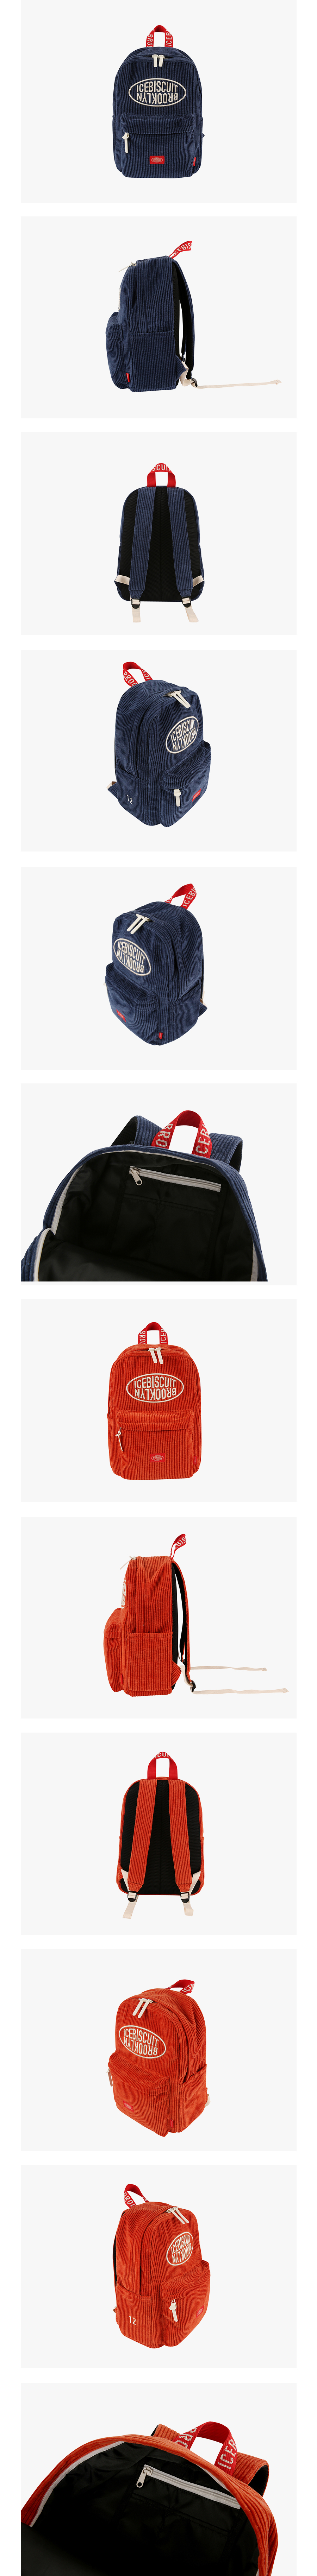 Icebiscuit symbol corduroy backpack 상세 이미지